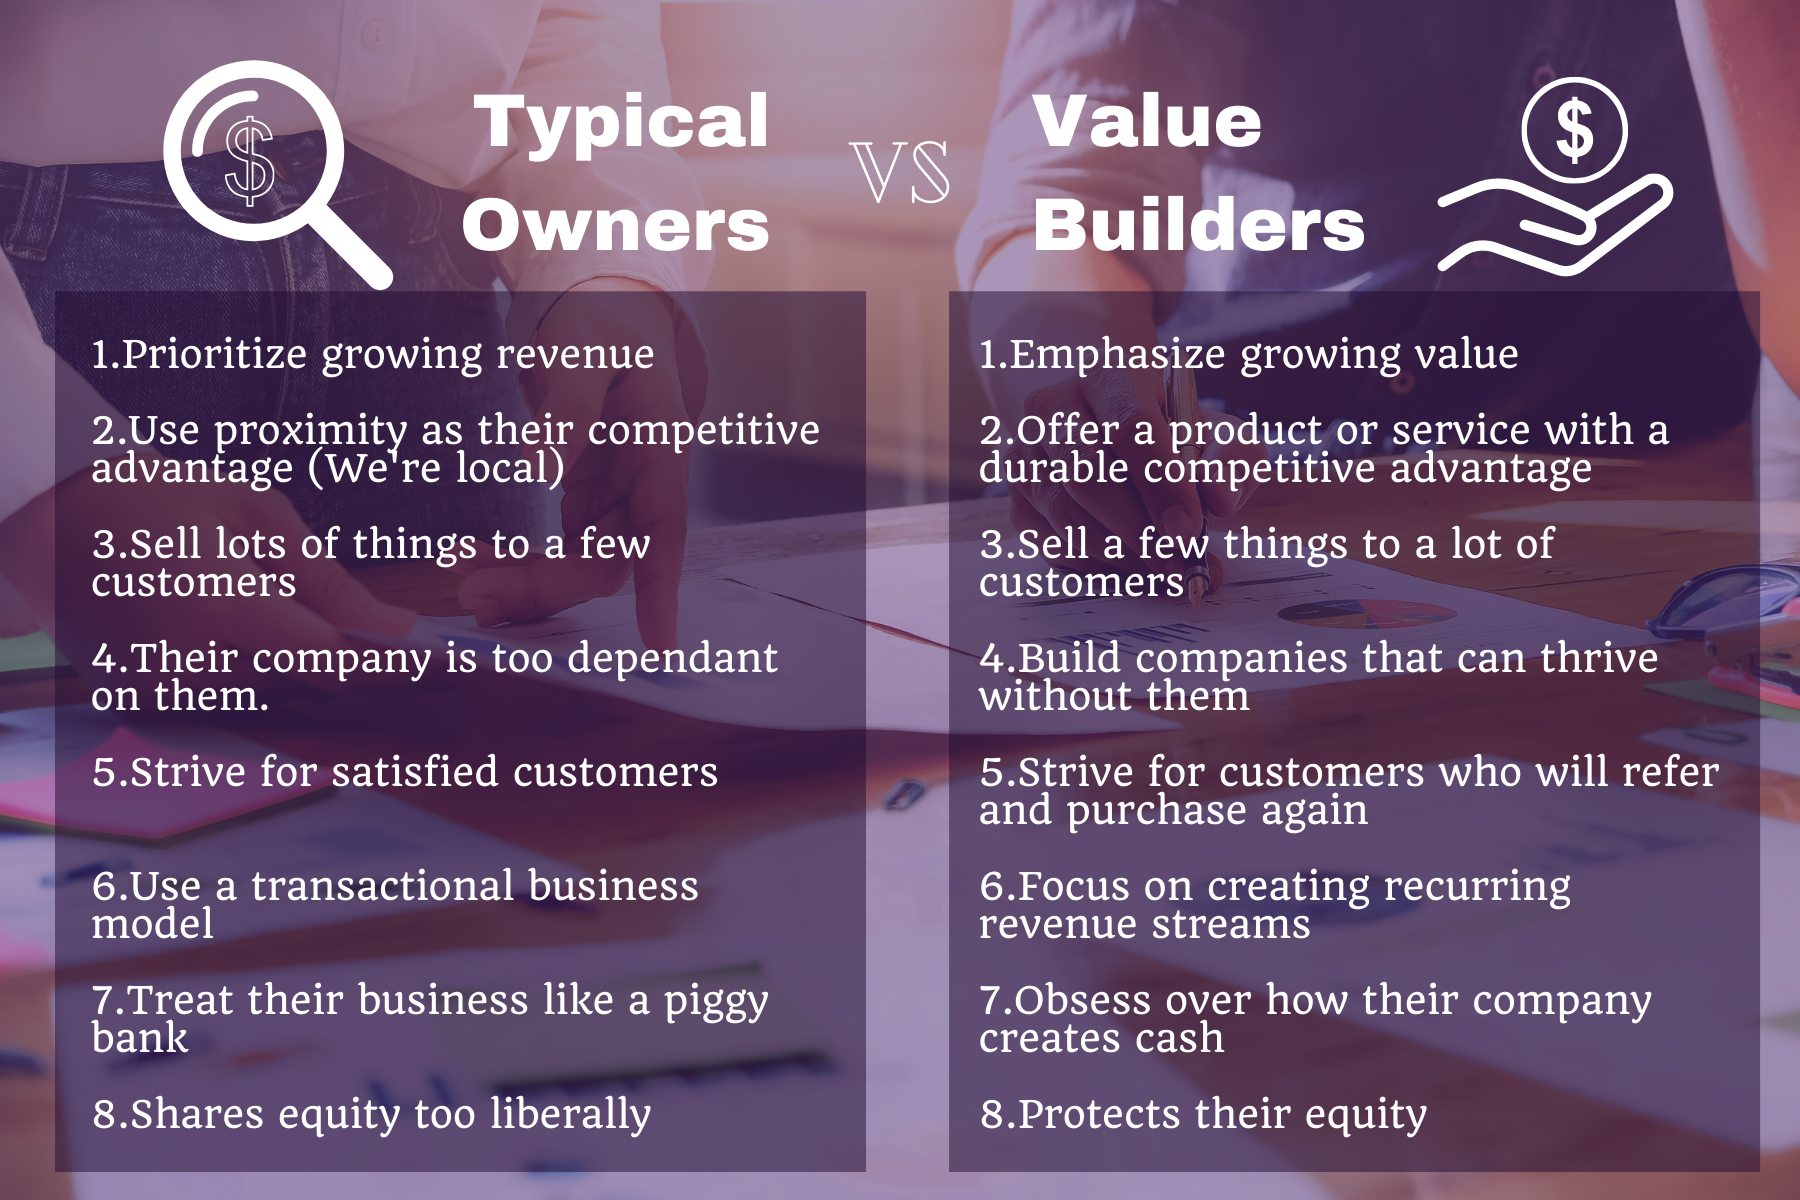 Typical Business vs Value Builder